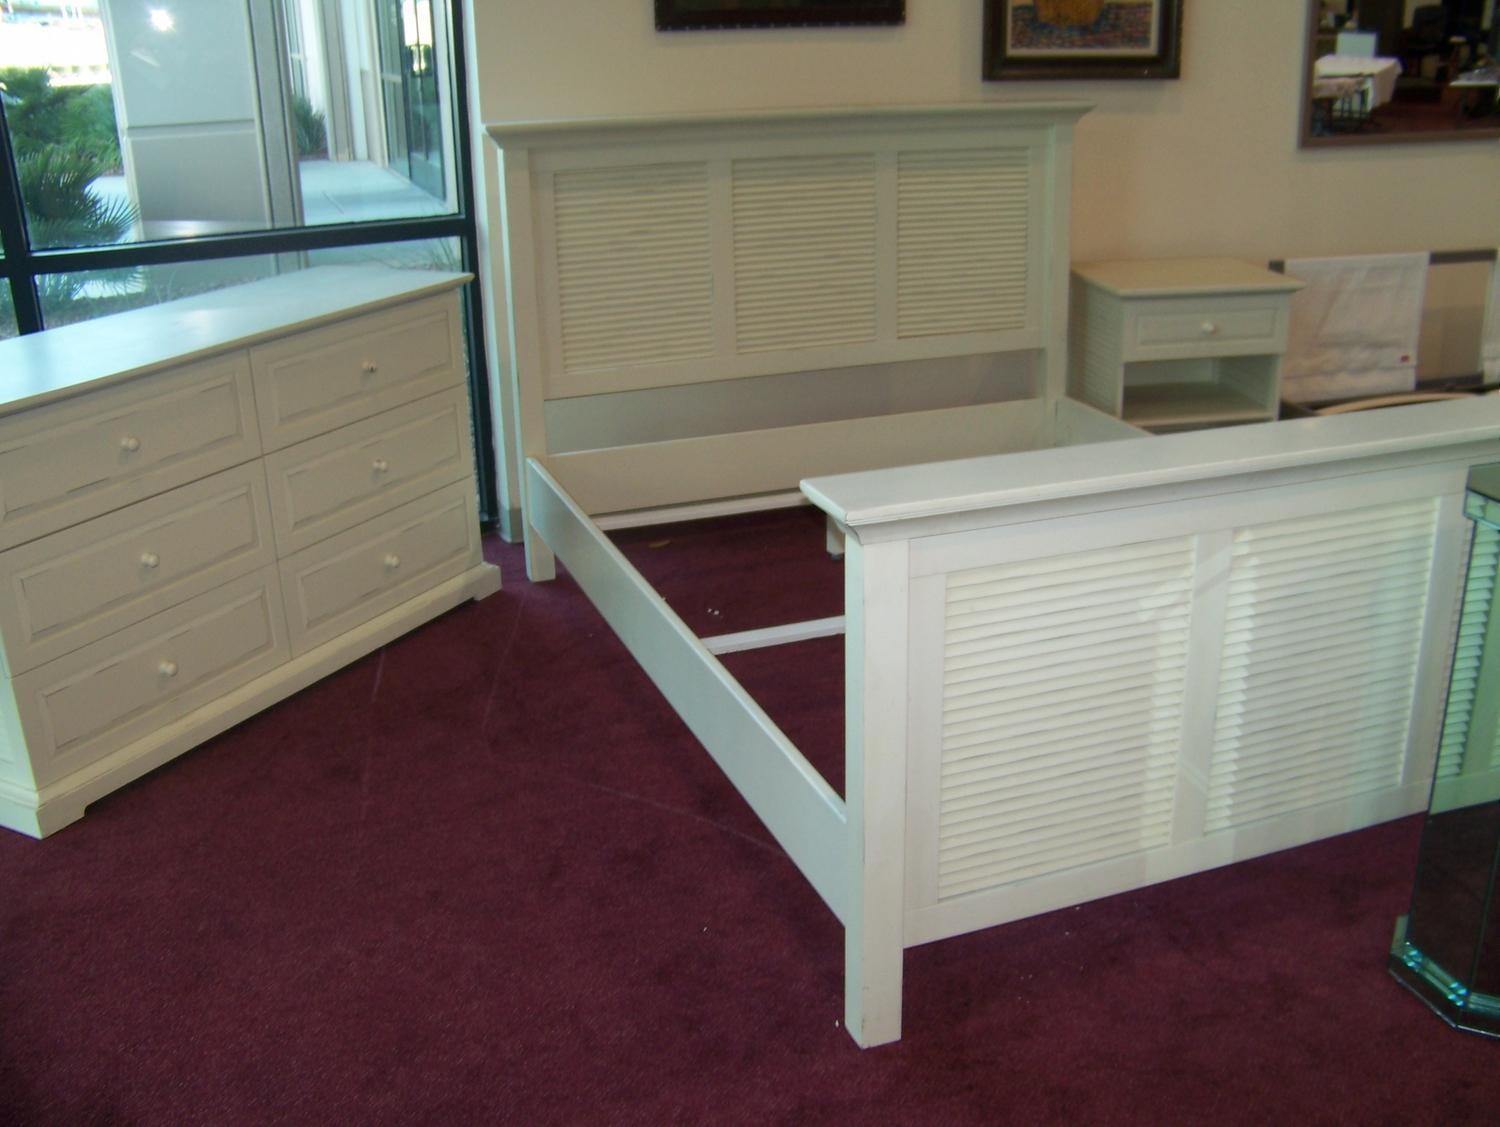 3 Piece Bedroom Set Queen Size Bed Frame Dresser And Night Stand